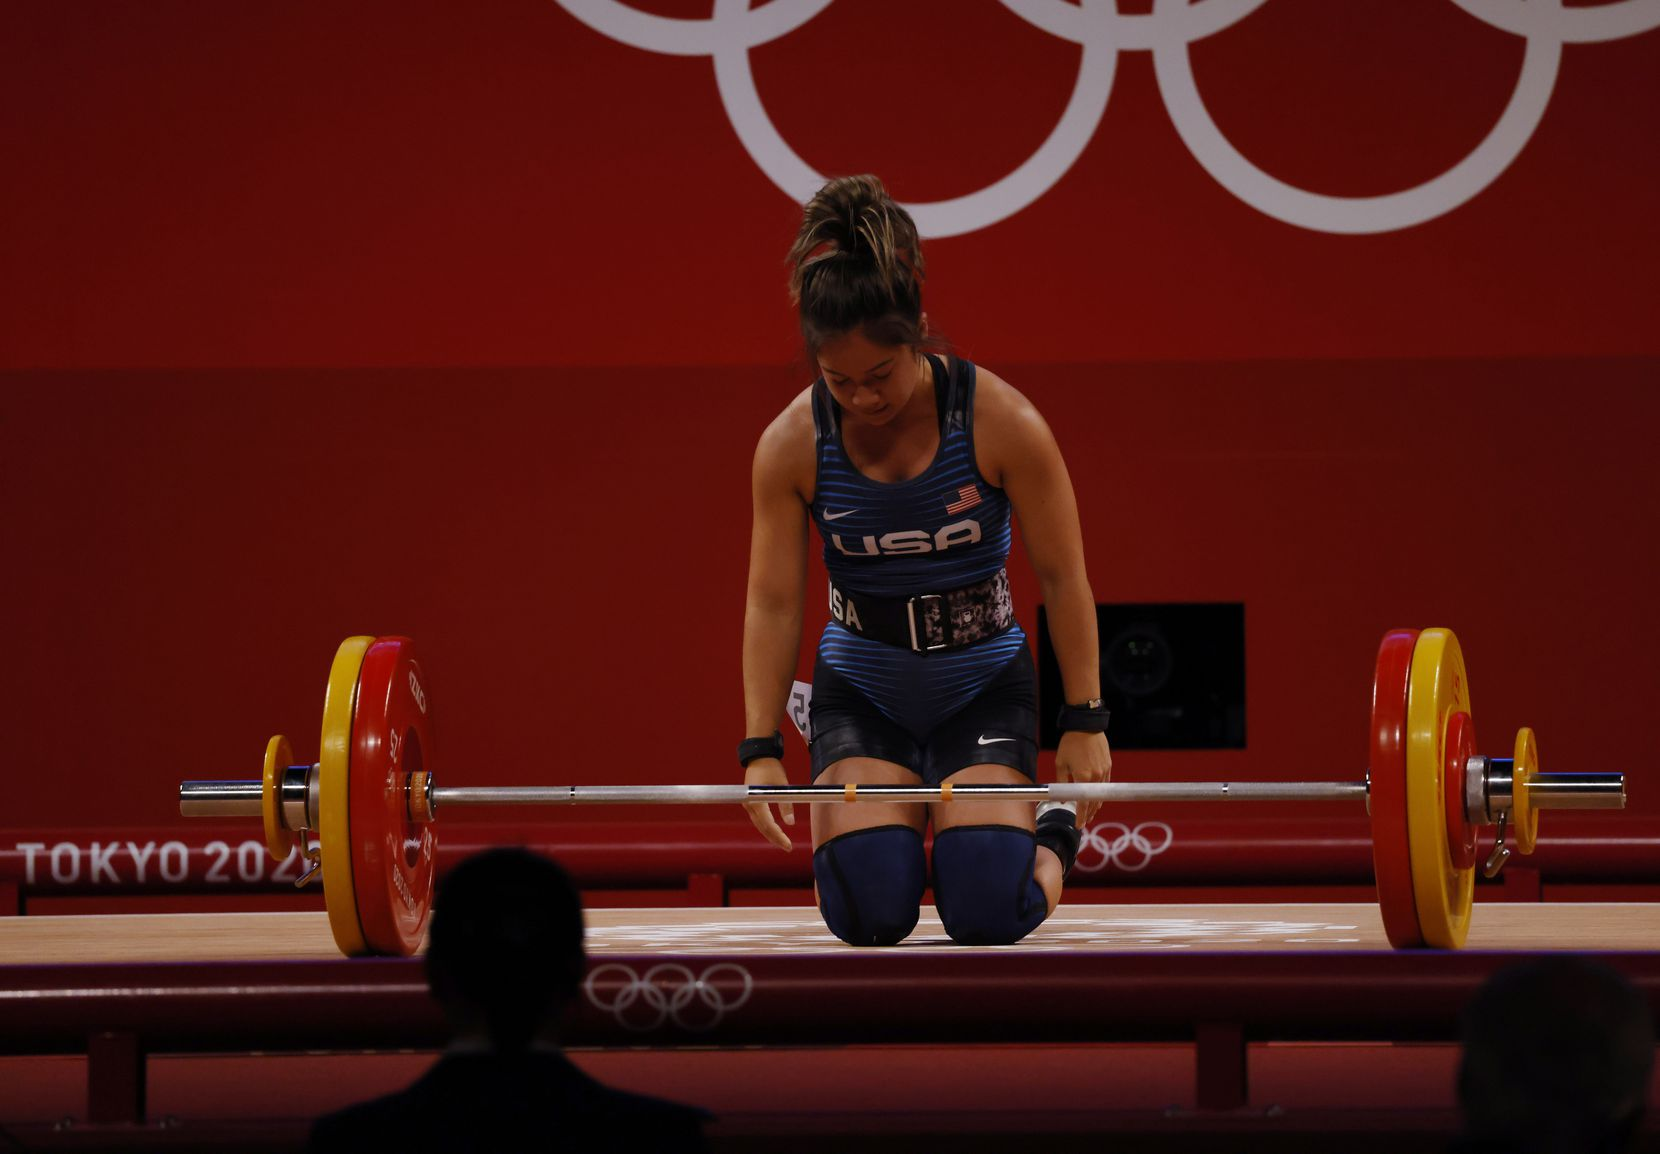 USA's Jourdan Delacruz dejected after an unsuccessful attempt in lifting 108 kg on her third attempt in the clean and jerk round during the women's 49 kg weightlifting final during the postponed 2020 Tokyo Olympics at Tokyo International Forum on Saturday, July 24, 2021, in Tokyo, Japan. Delacruz received a no-lift on all three attempts of the clean and jerk round. (Vernon Bryant/The Dallas Morning News)